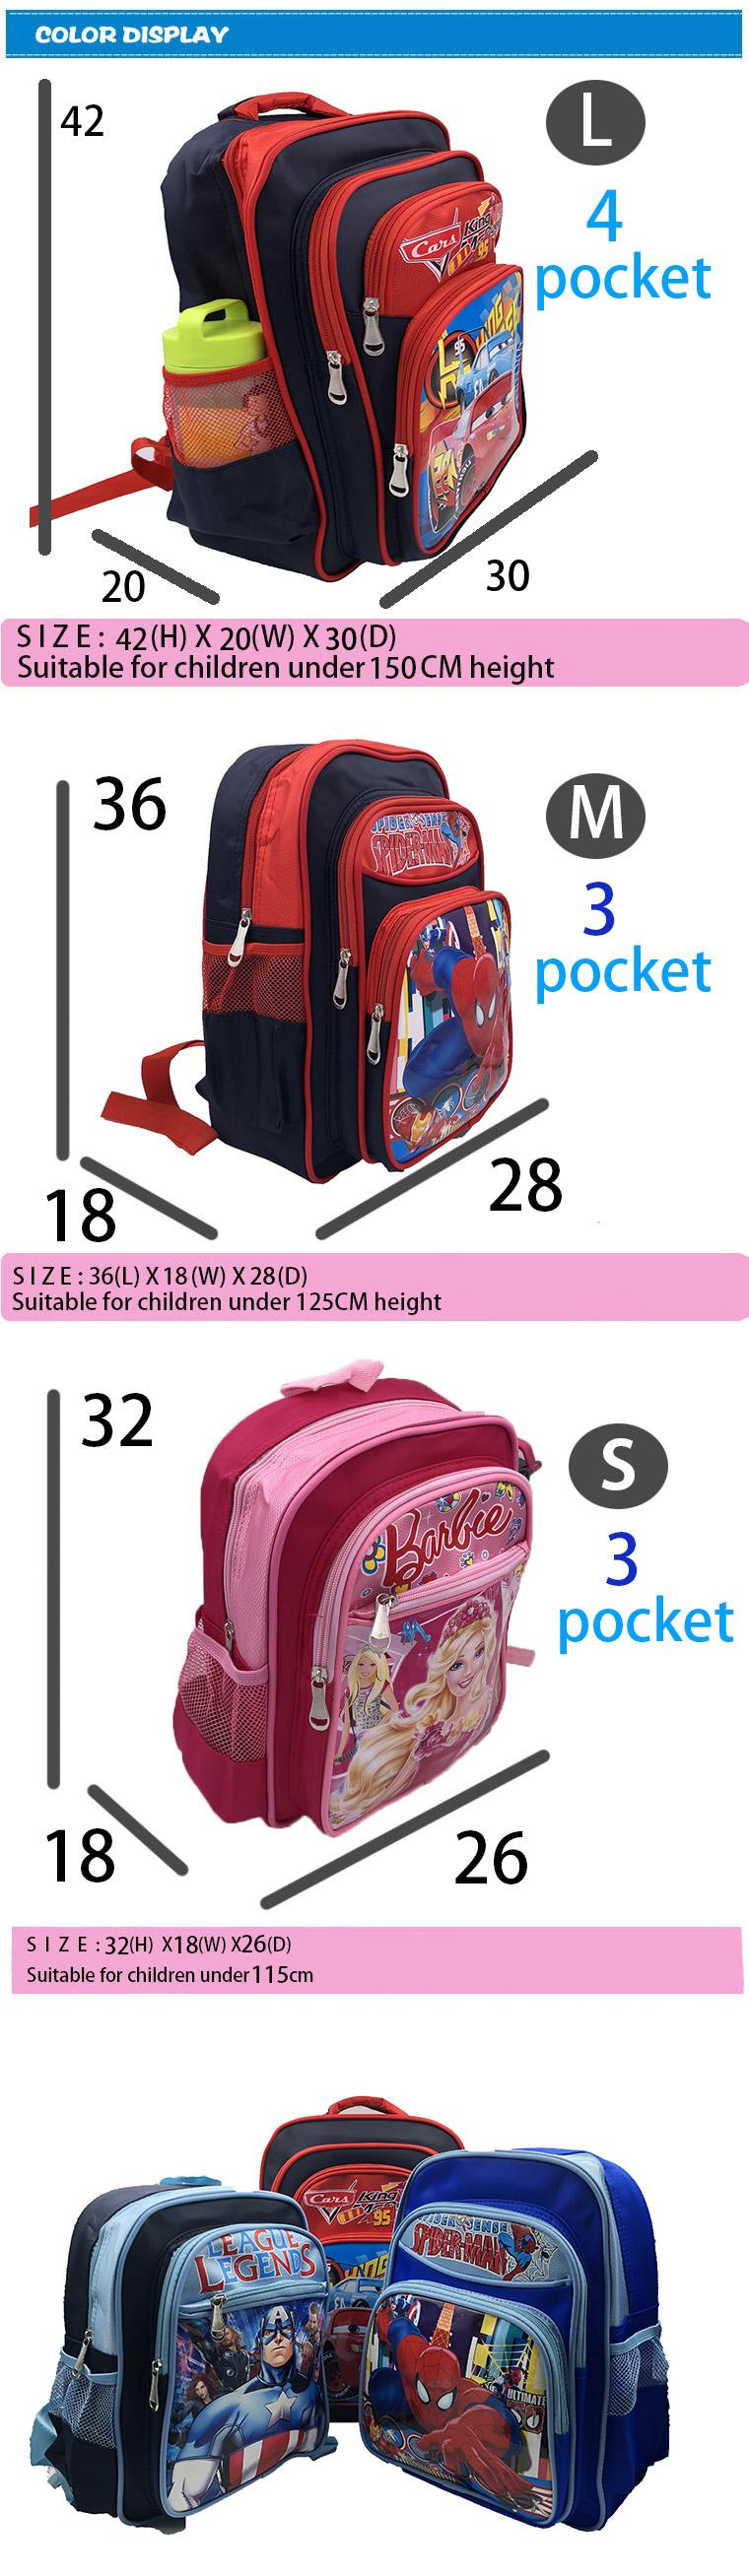 df6fdec38c5b Spiderman children s school bag 2 to 15 years old